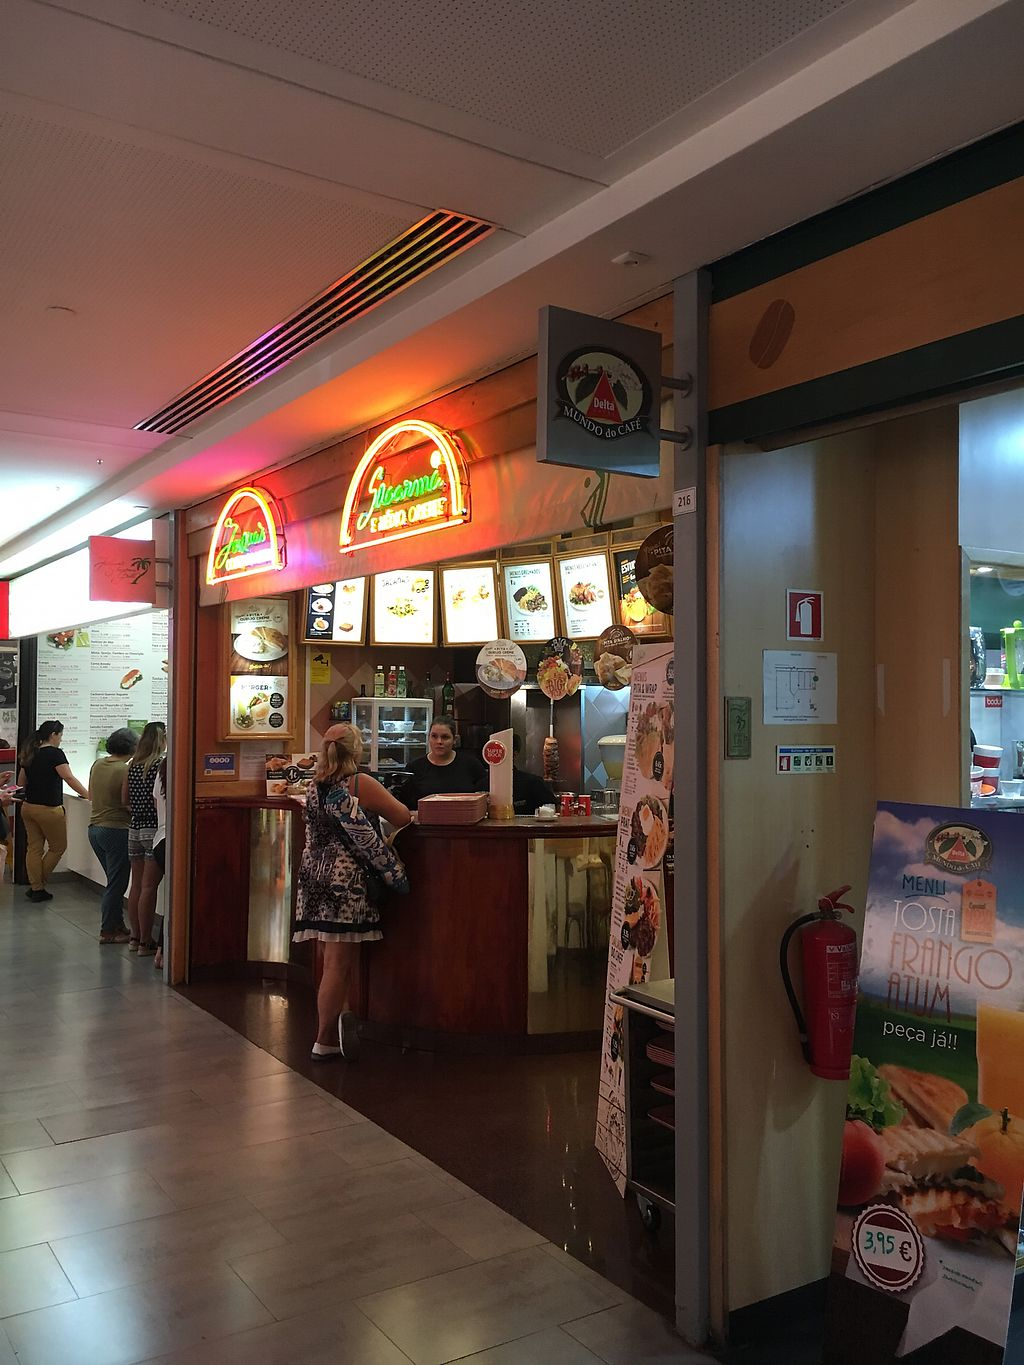 """Photo of Joshua's Shoarma Grill - Kiosk  by <a href=""""/members/profile/hack_man"""">hack_man</a> <br/>Outside  <br/> September 5, 2017  - <a href='/contact/abuse/image/63157/301158'>Report</a>"""